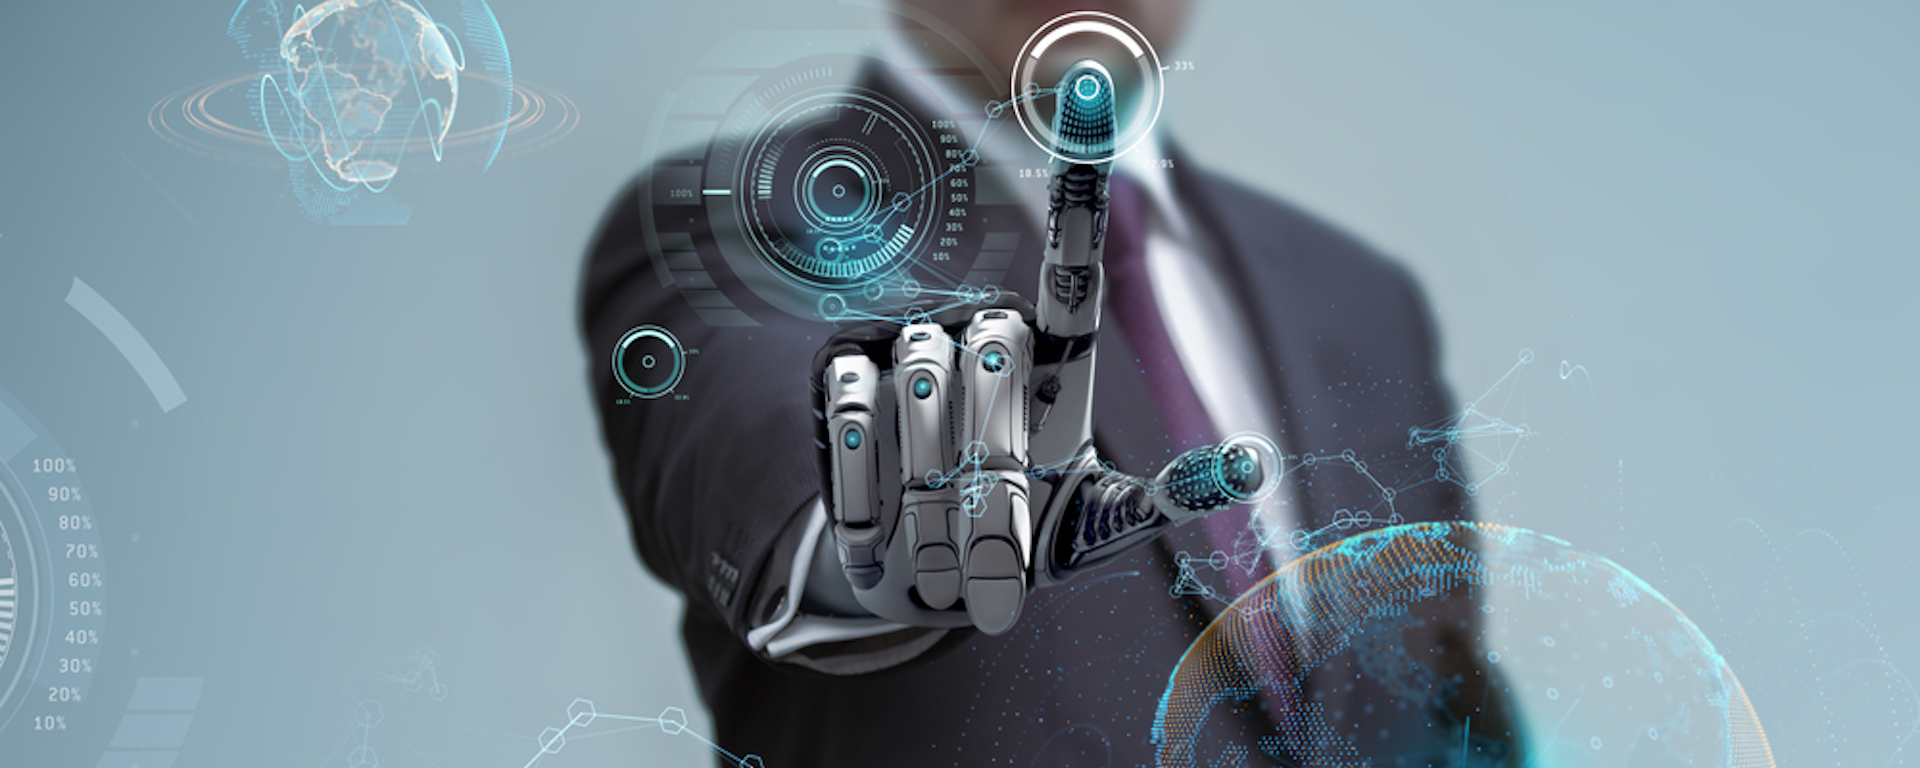 future of artificial intelligence essay I need to write a paper on the title's subject, the role of artificial intelligence in future technology  as it is pretty short and the subject.